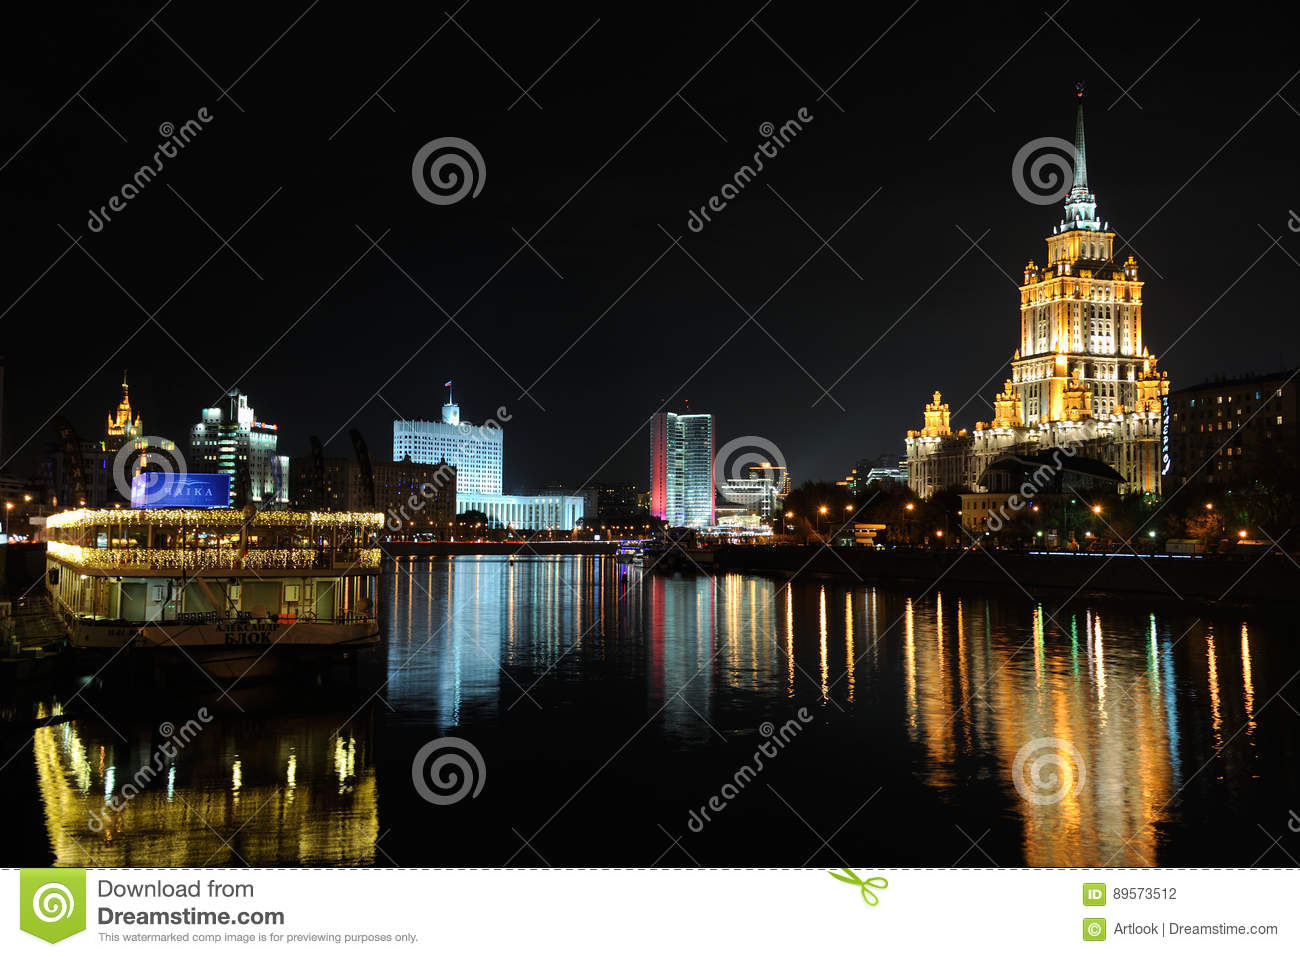 Splendid Nightscape of Moscow City at Moskva River